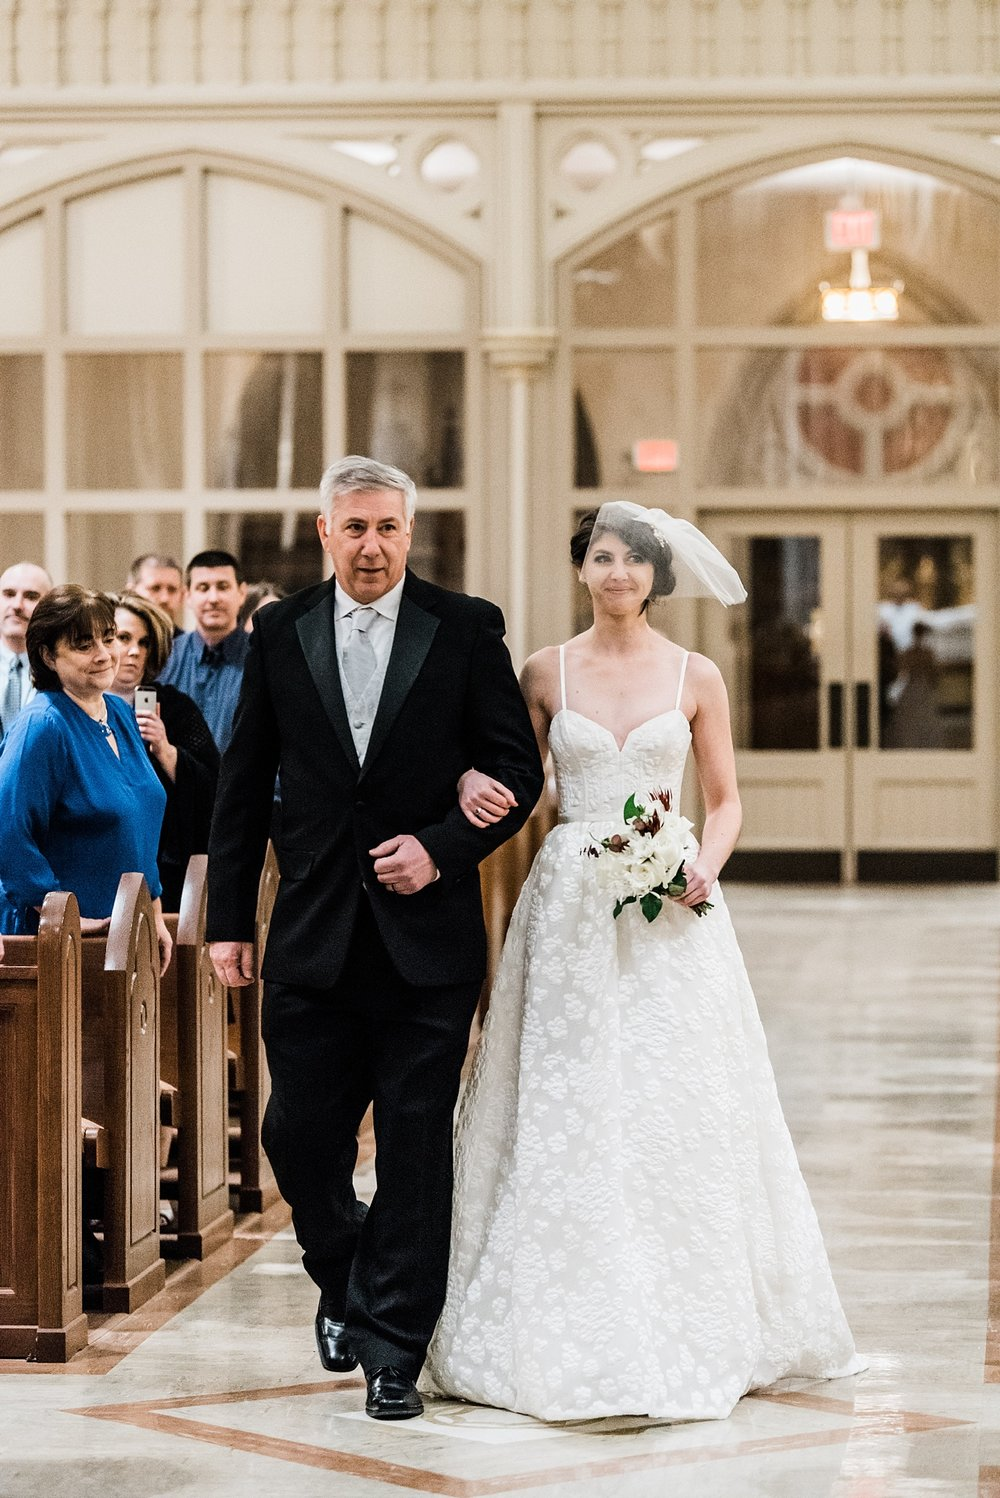 bride walking down aisle with father wedding photo